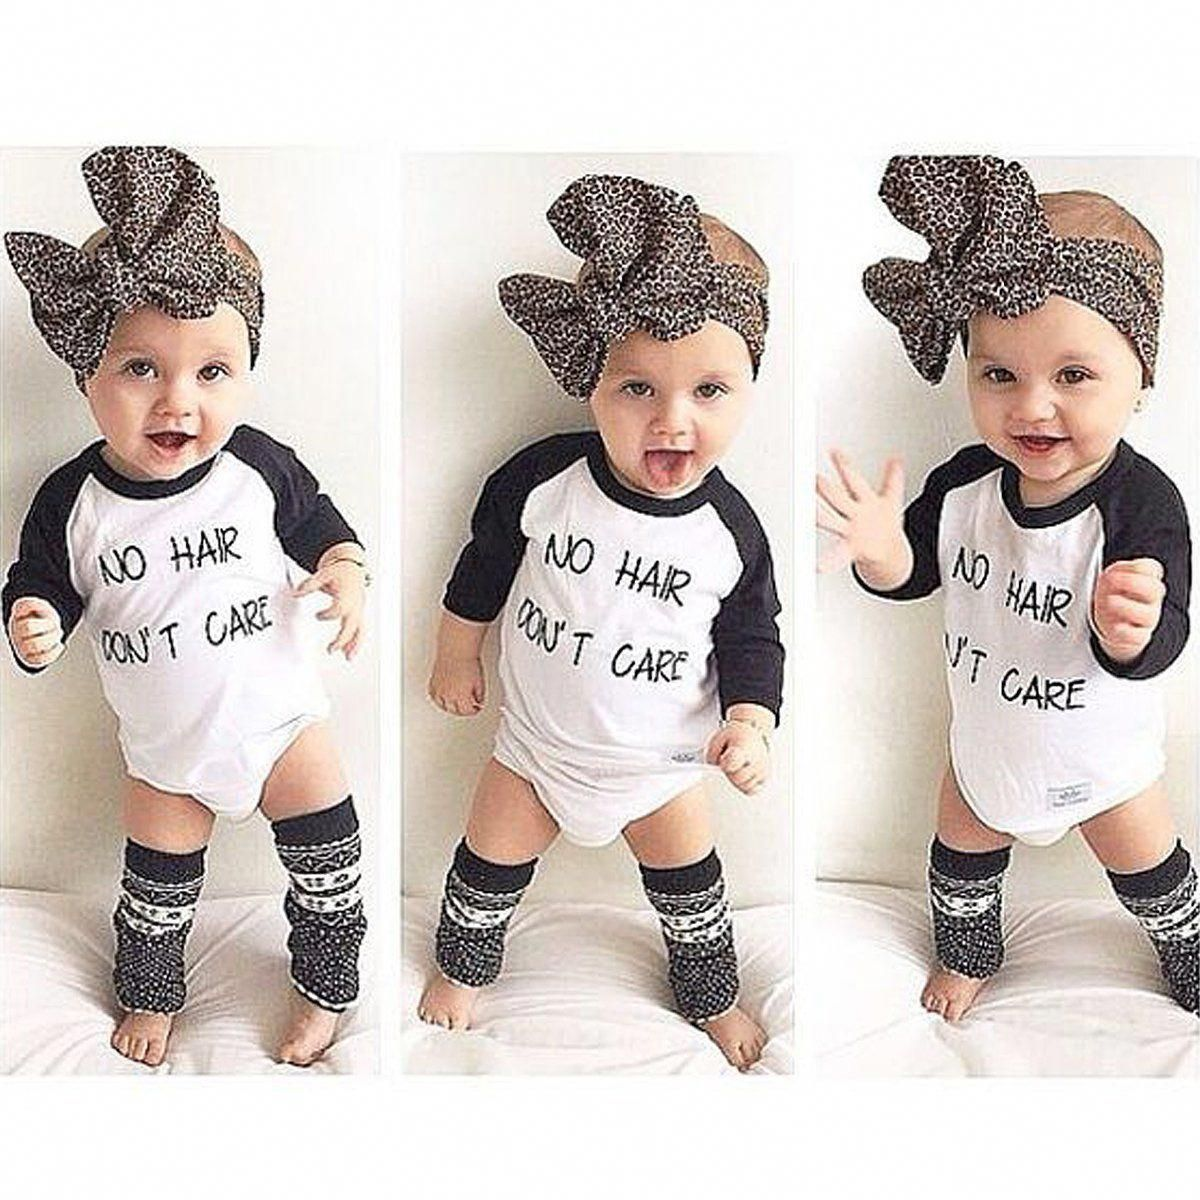 Cute Cheap Baby Clothes  7 Year Baby Girl Clothes  7 Month Old